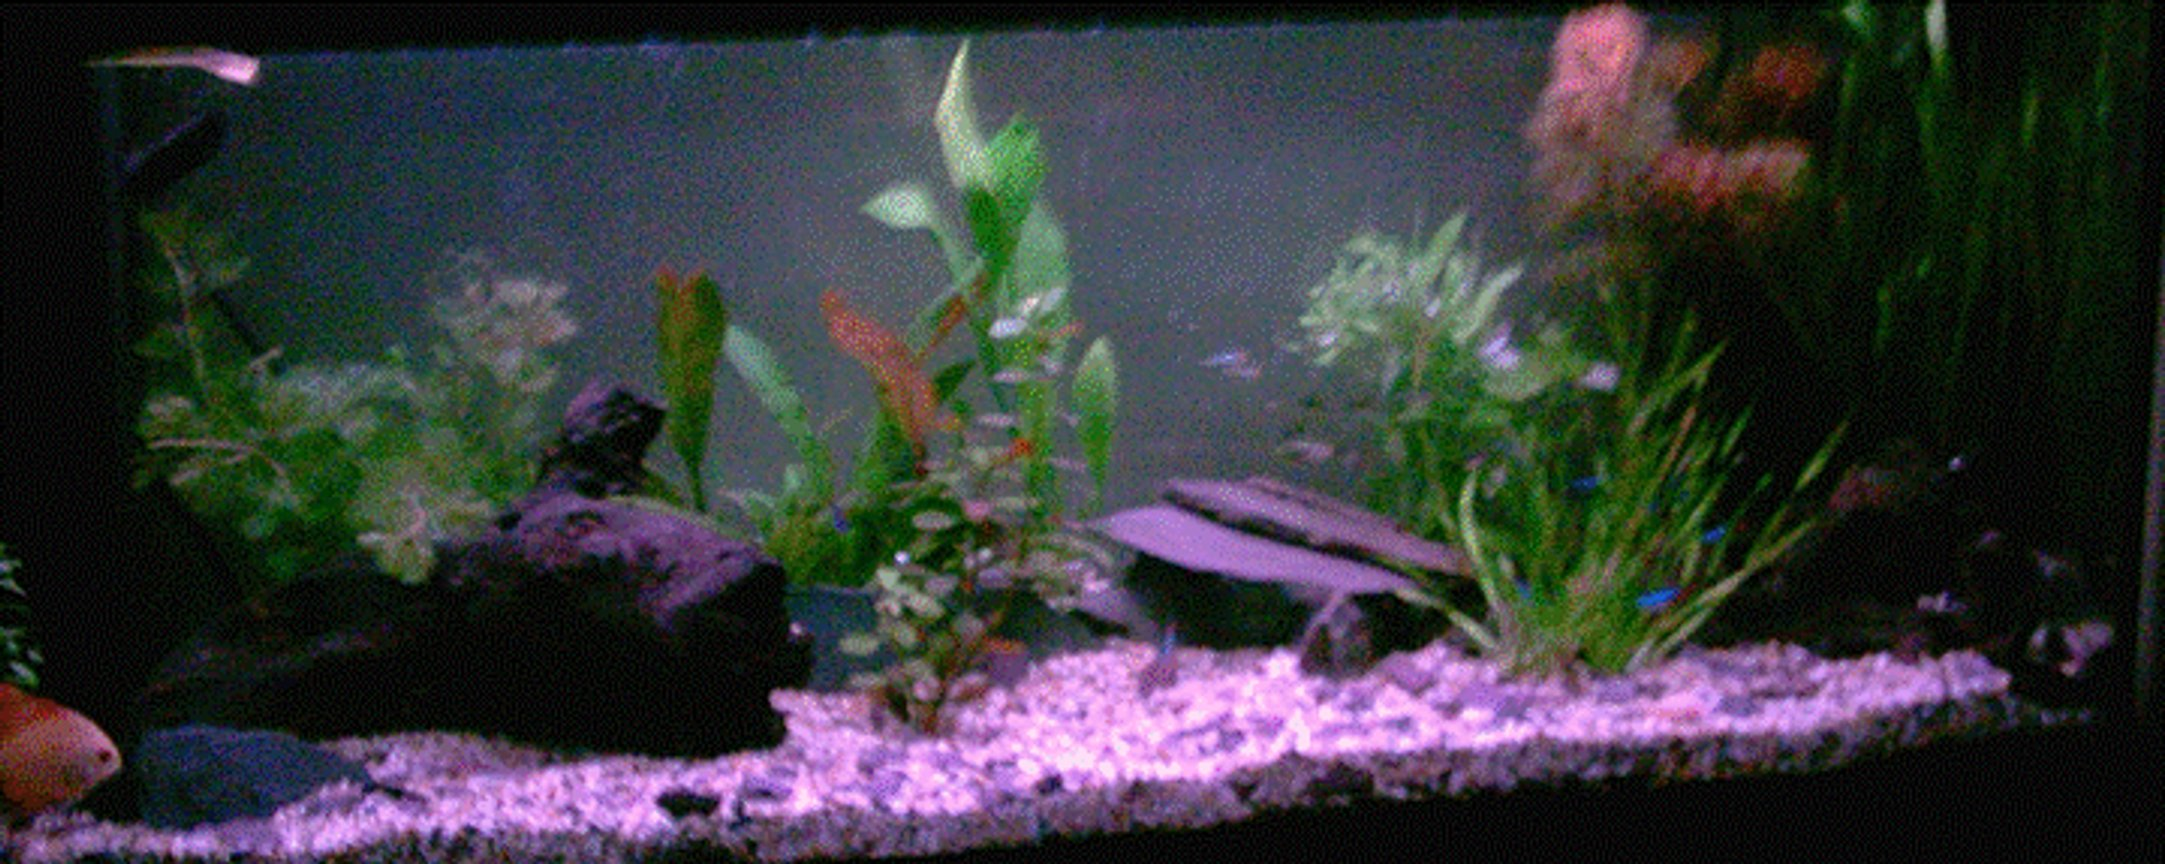 120 gallons freshwater fish tank (mostly fish and non-living decorations) - My discus tank Discus come first not plants.